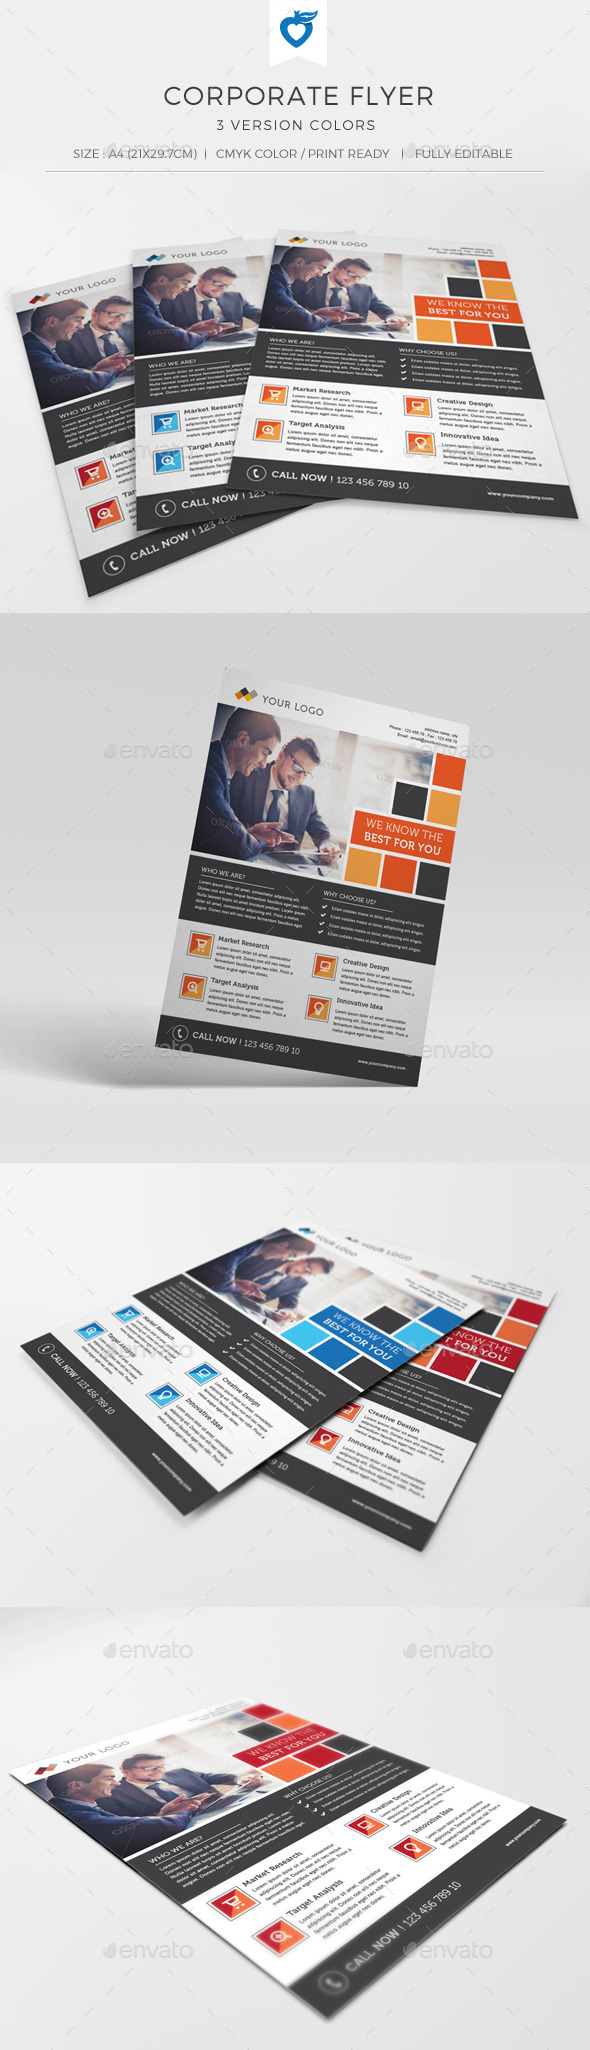 GraphicRiver Corporate Flyer 10938587